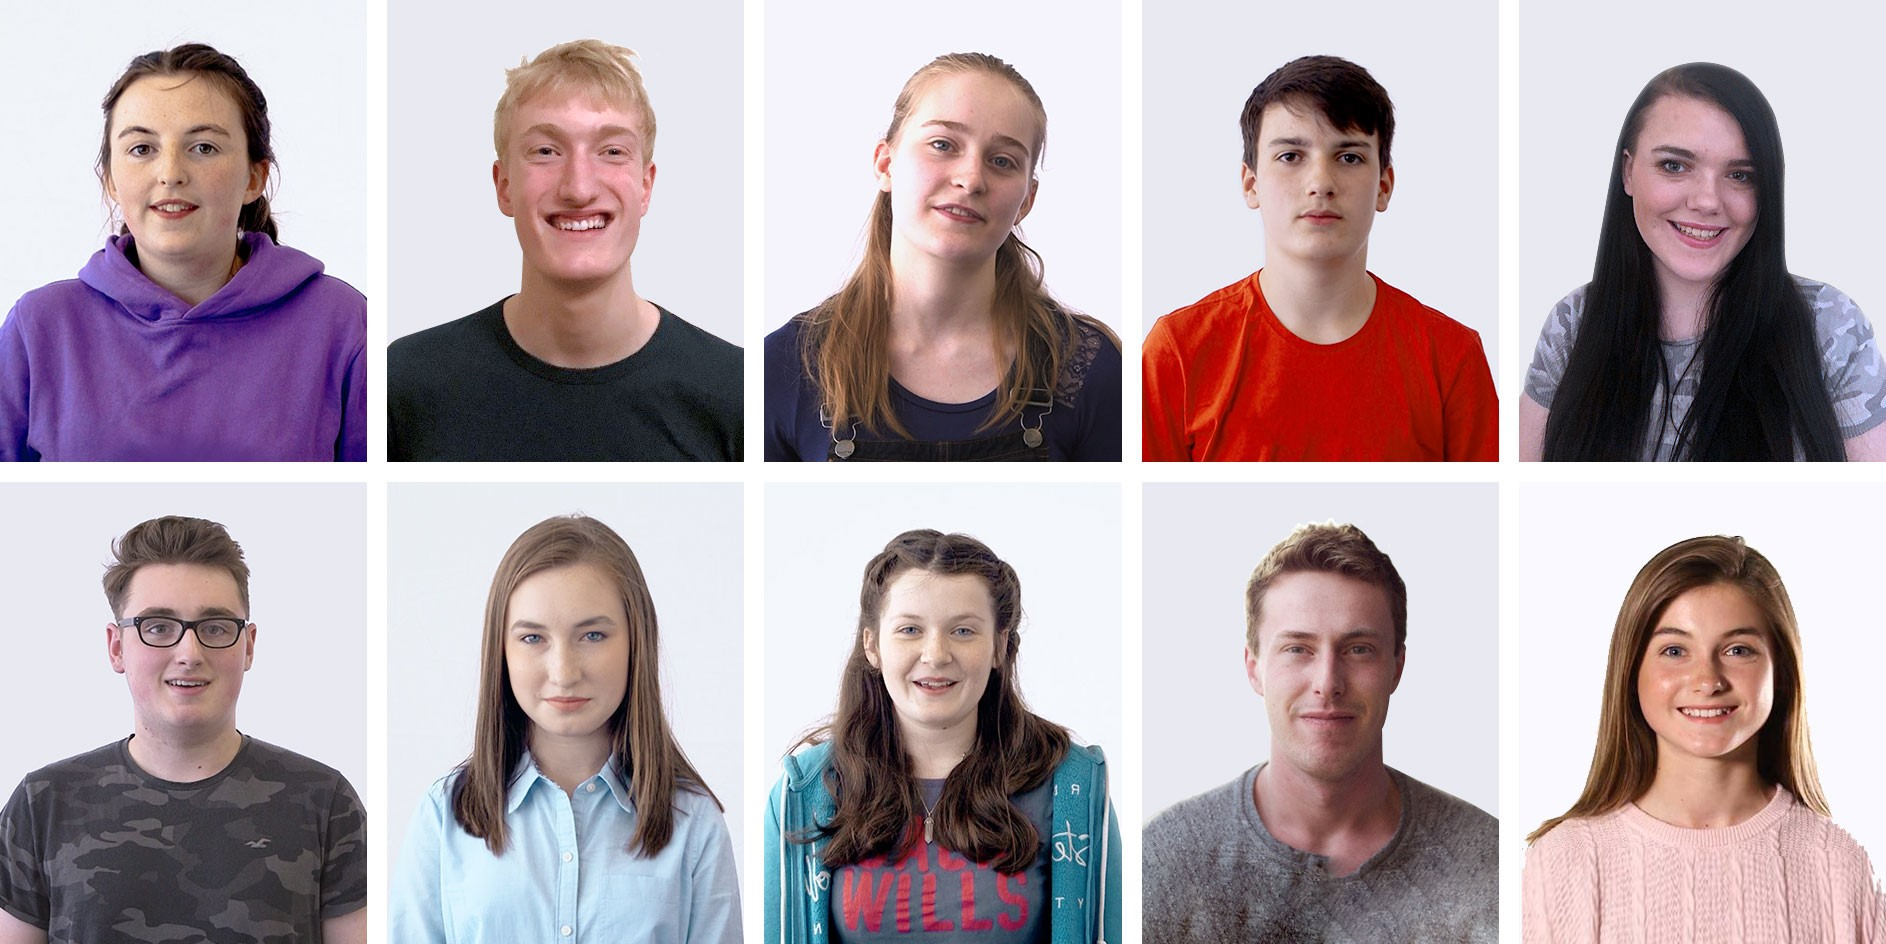 Meet the young ambassadors